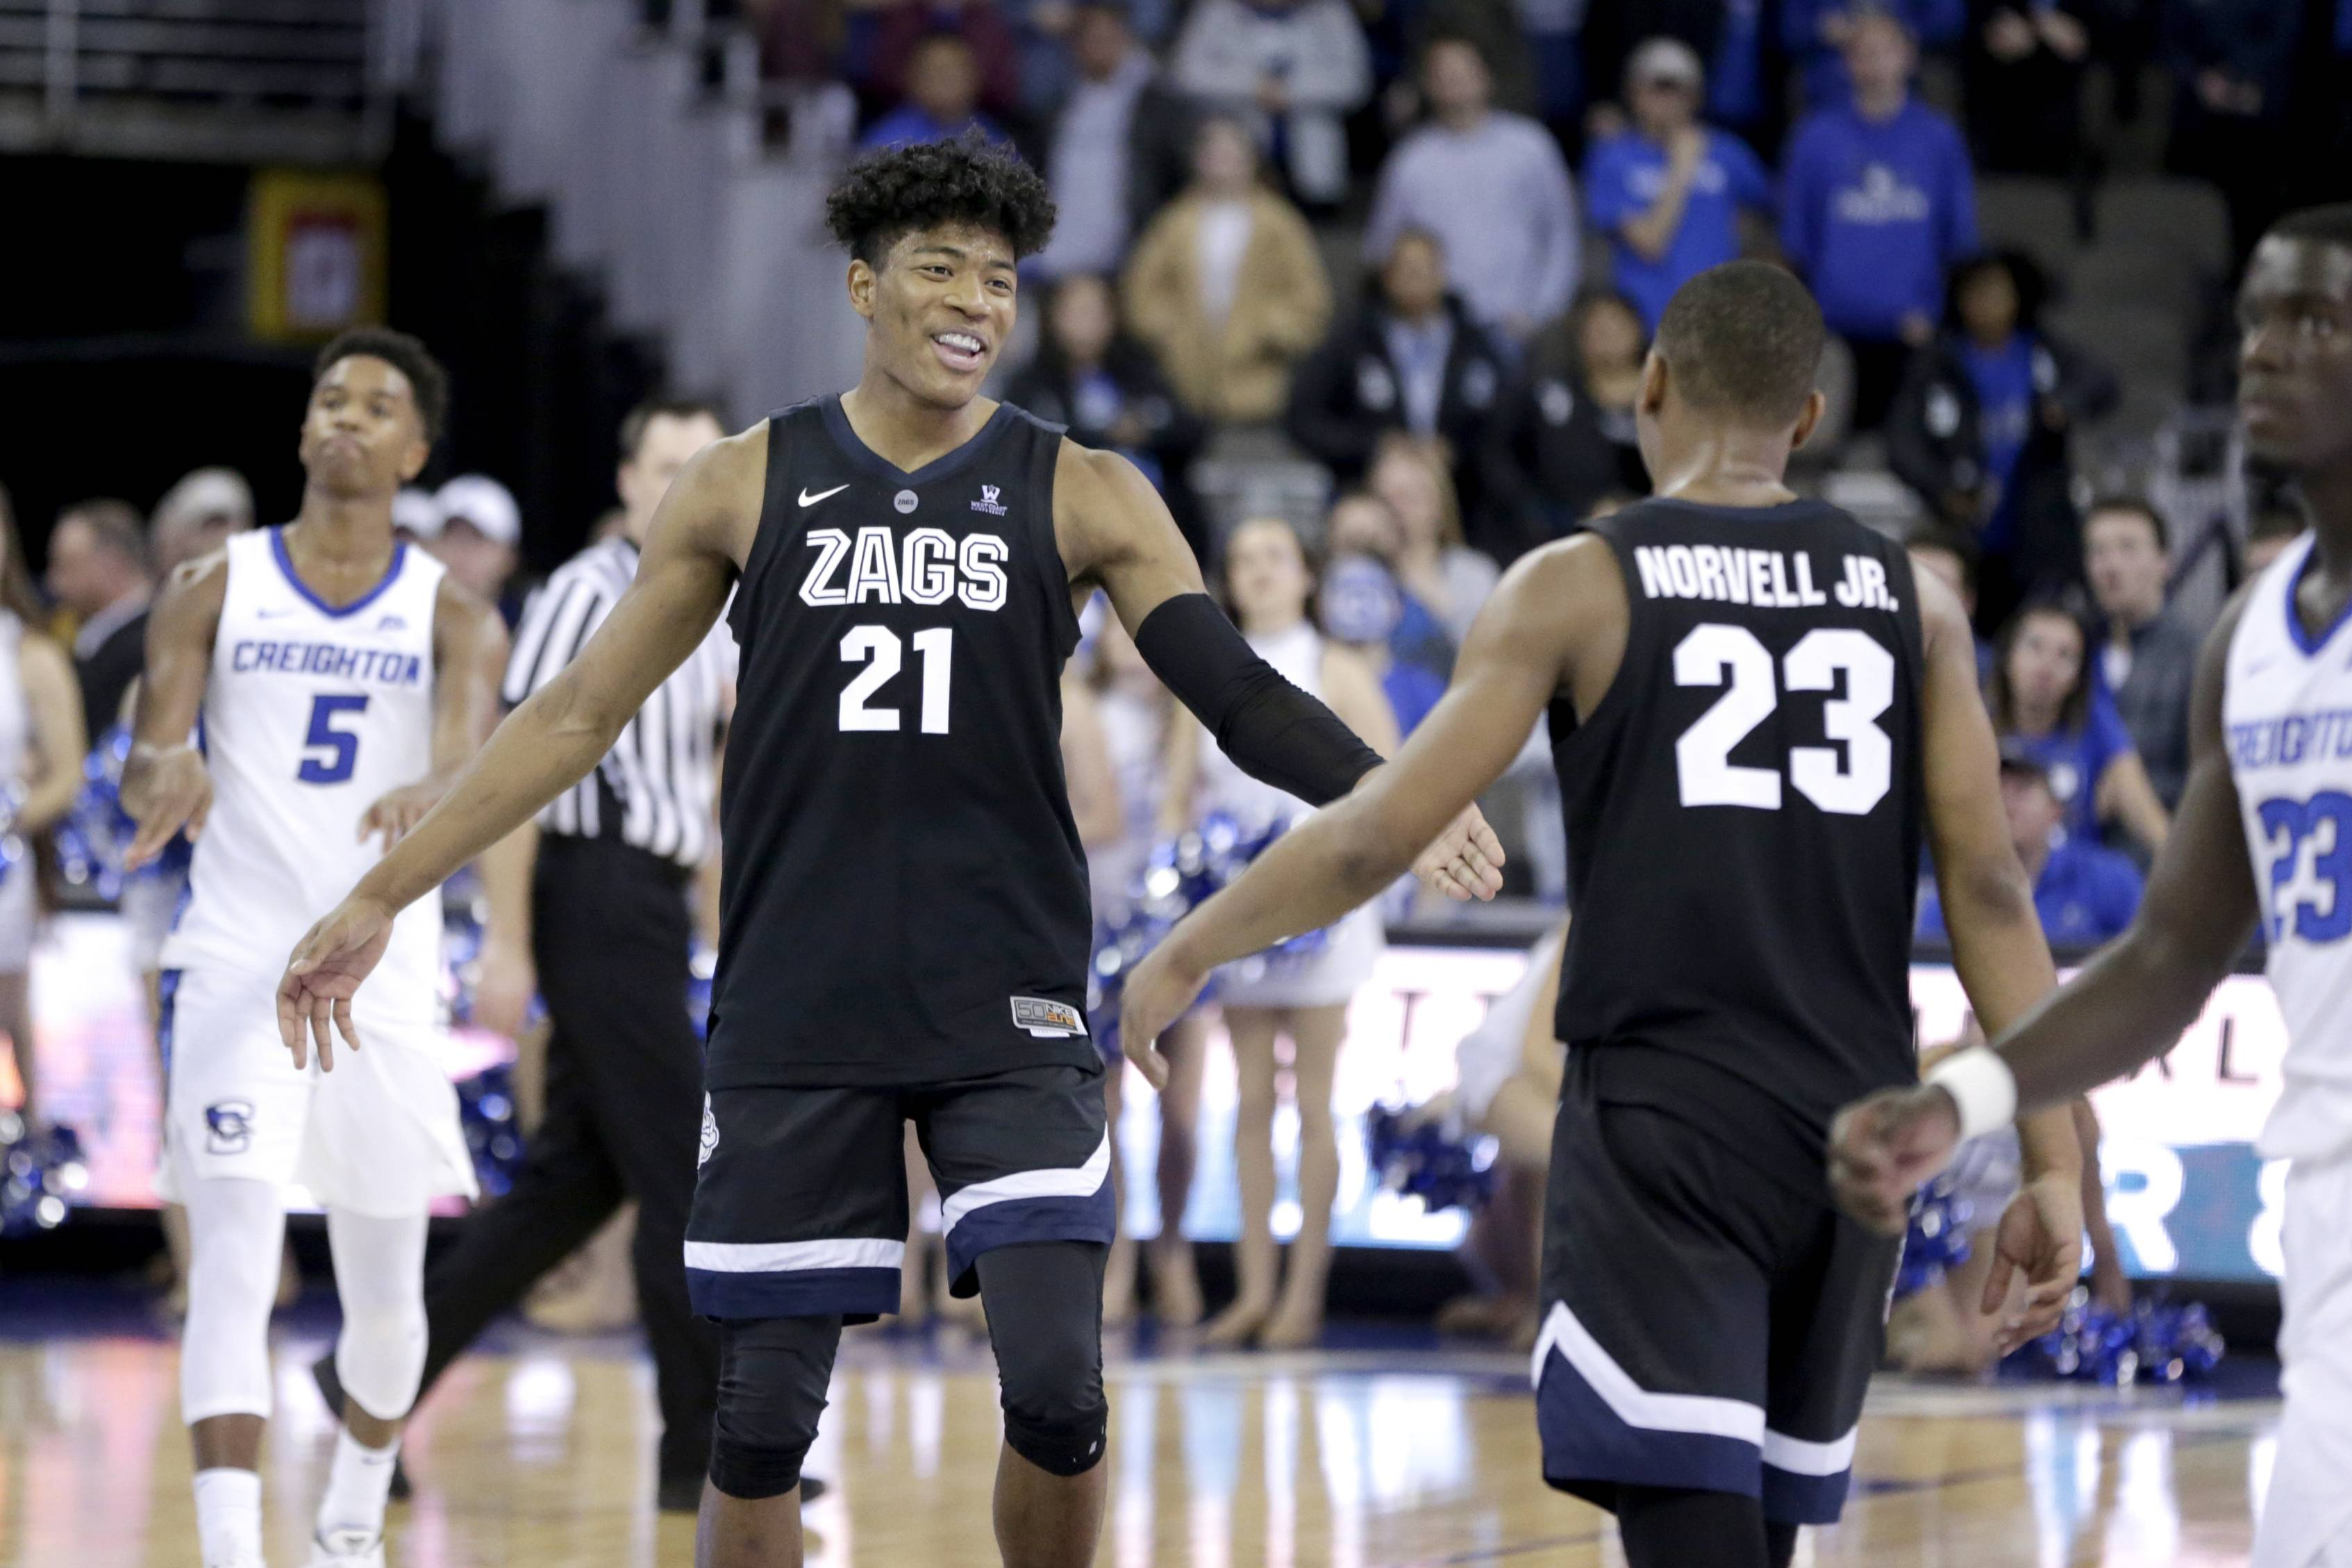 Creighton's Ty-Shon Alexander (5) walks on the court as Gonzaga's Rui Hachimura (21) celebrates with Zach Norvell Jr. (23) their 103-92 win over Creighton in December, Hachimura is expected to be the first Japan-born first-round pick. He has the size and shooting touch to fit into today's NBA as a small-ball four or five; averaging 20.3 points.